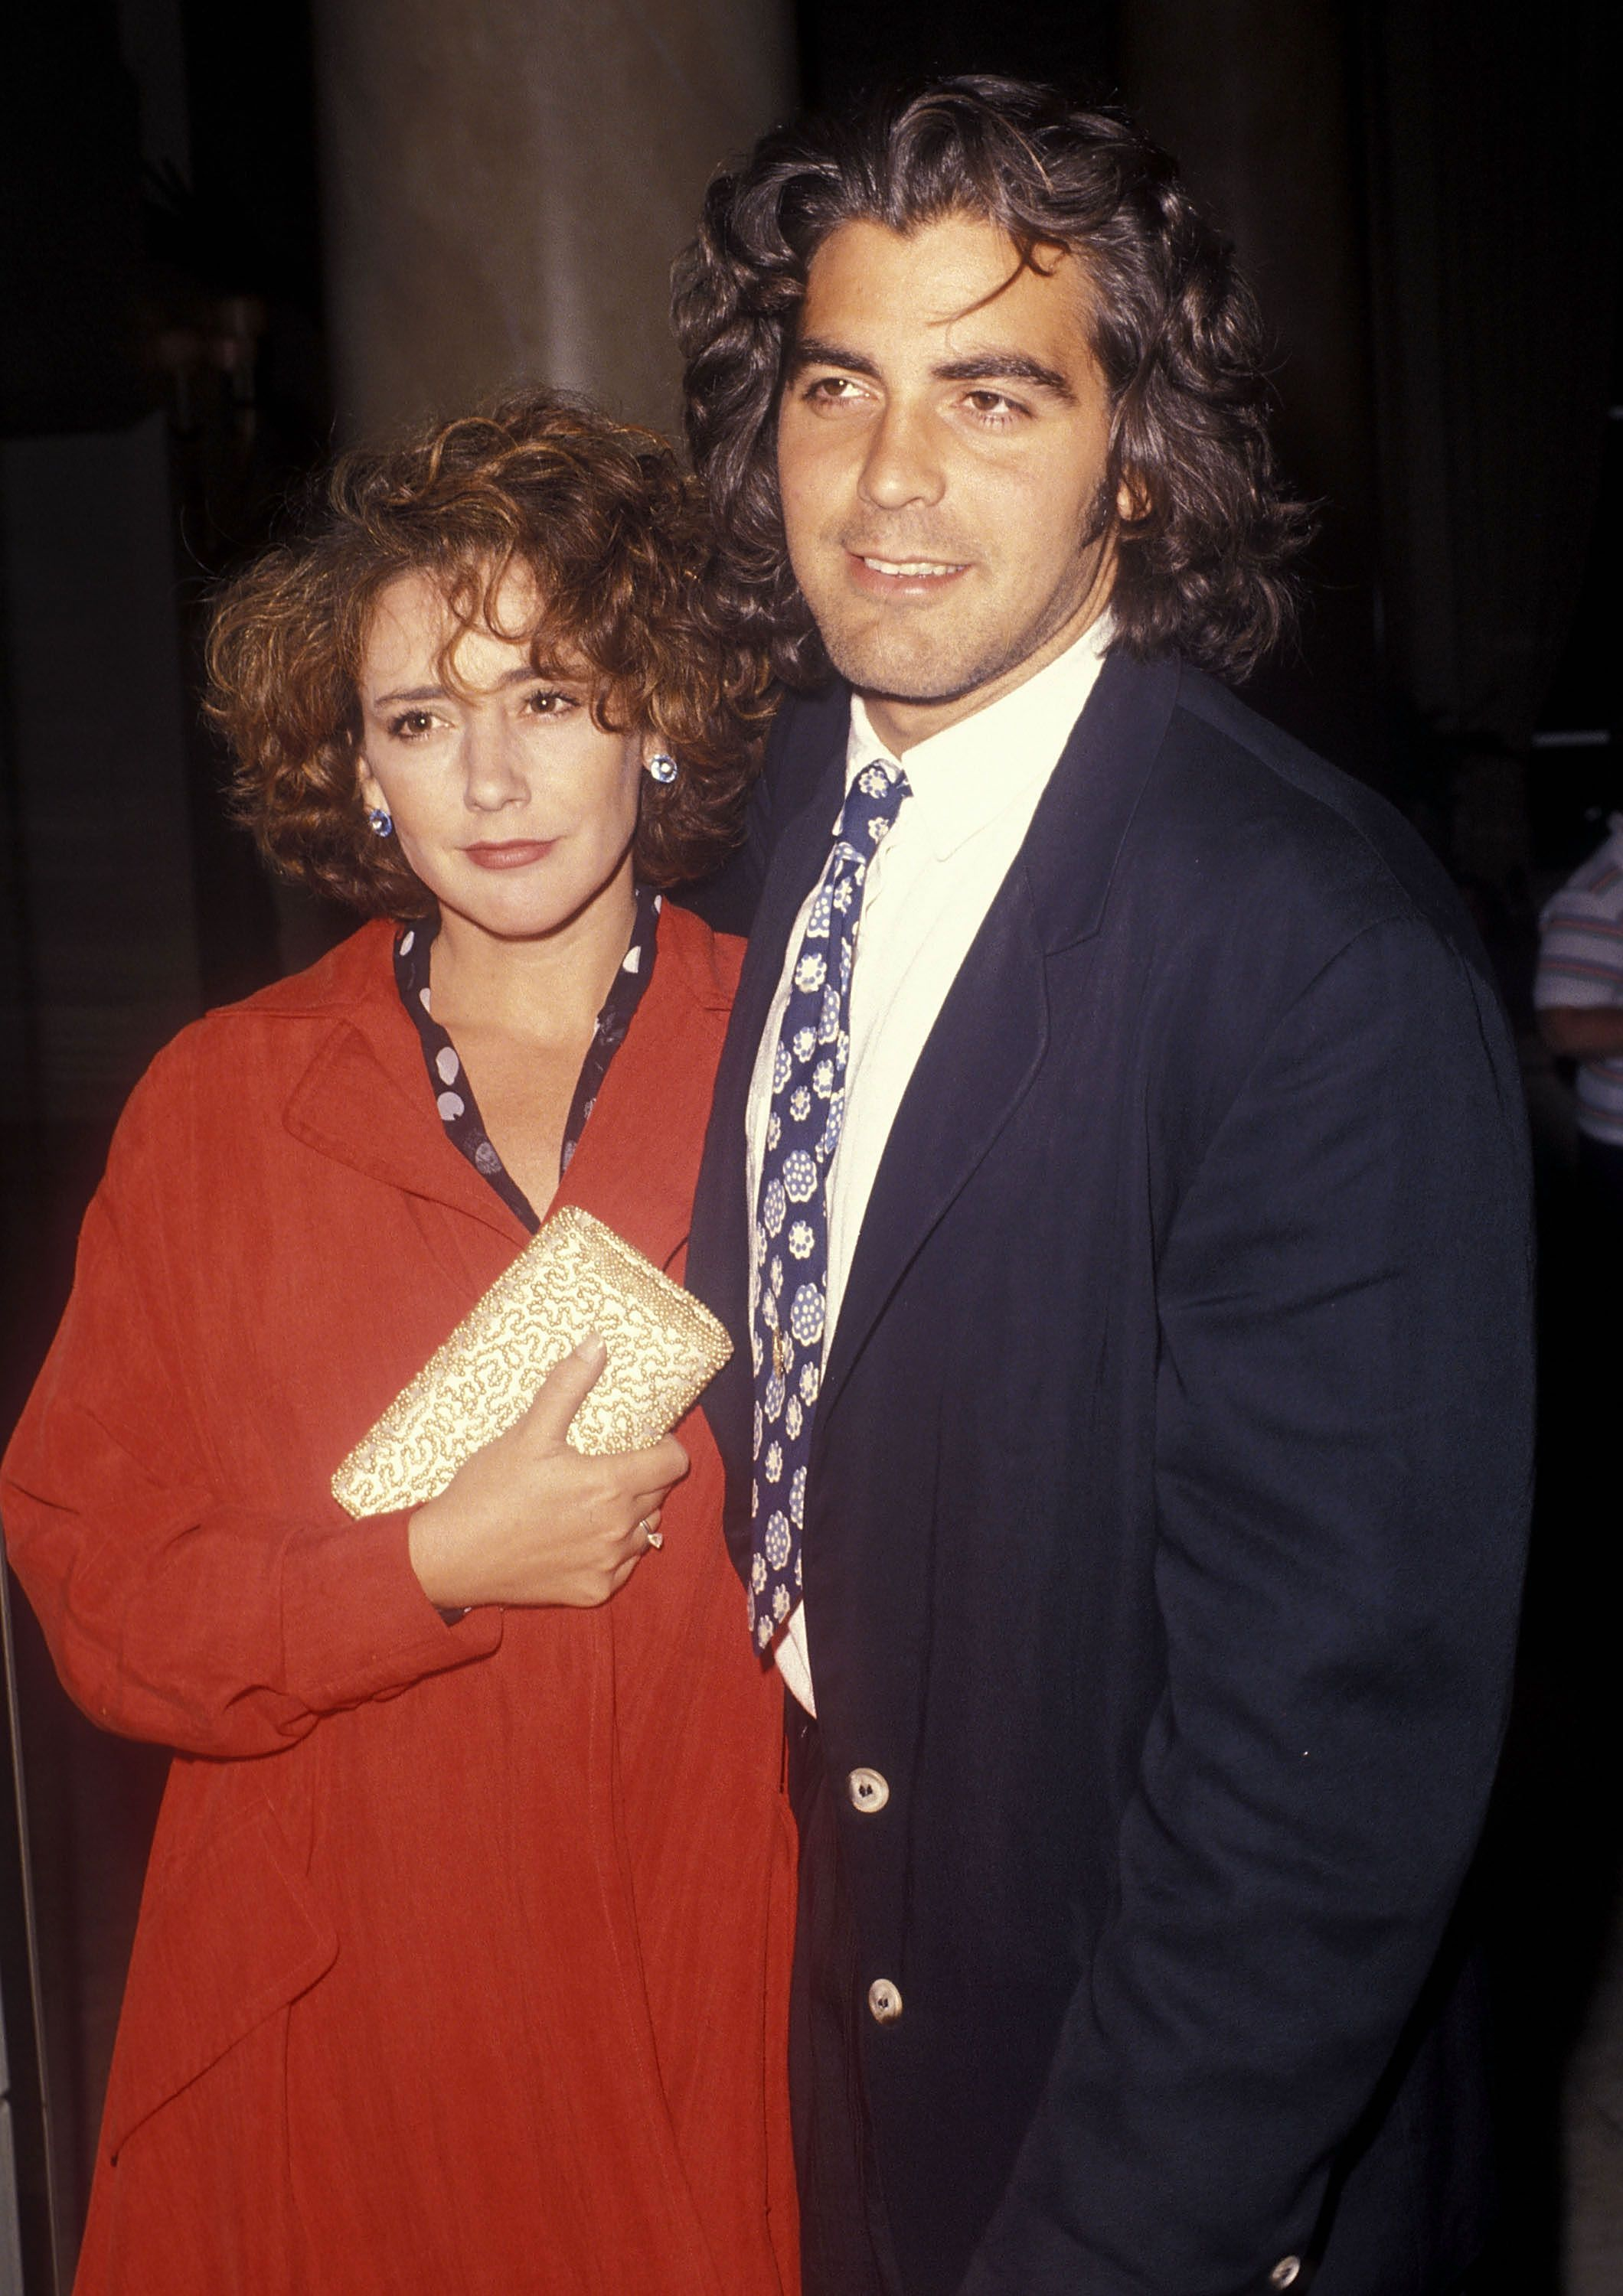 George Clooney and Talia Balsam at the ABC Television Affiliates Party in 1990 in Los Angeles, California | Source: Getty Images